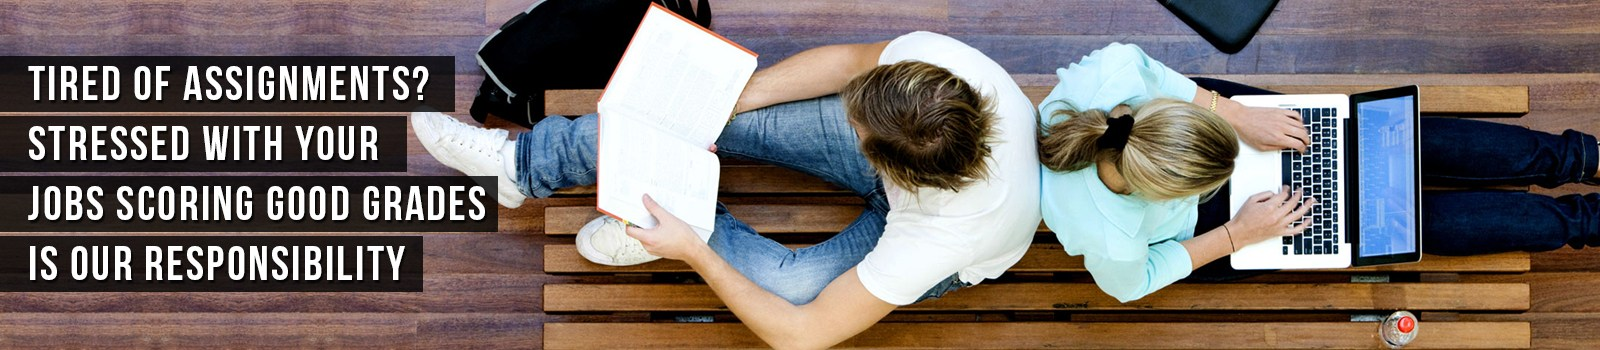 Assignment Help and Homework Help - Number 1 in